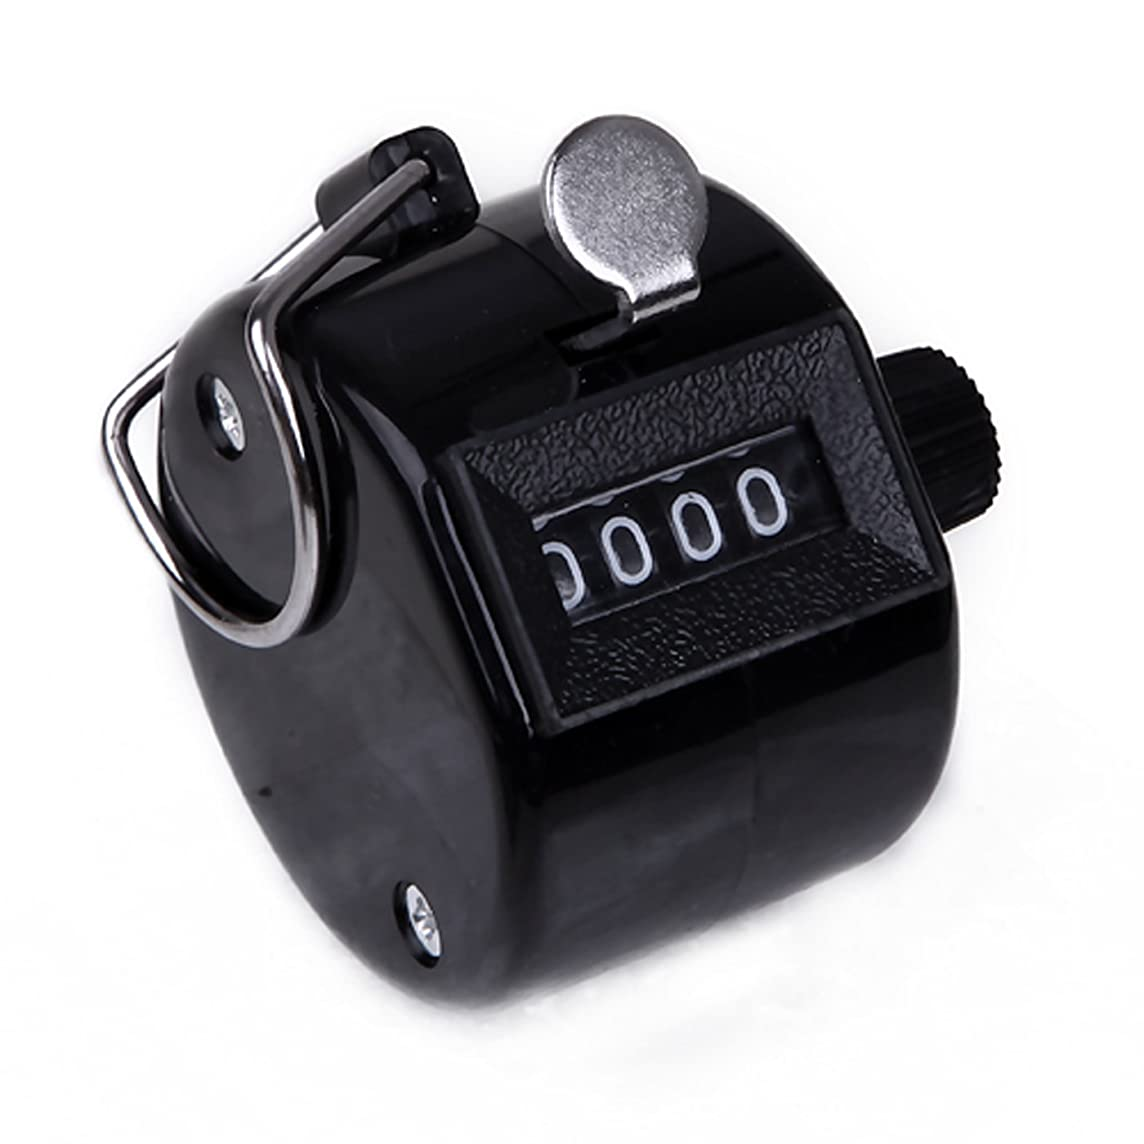 HDE Handheld Tally Counter 4 Digit Mechanical Manual Clicker with Silver Ring Holder